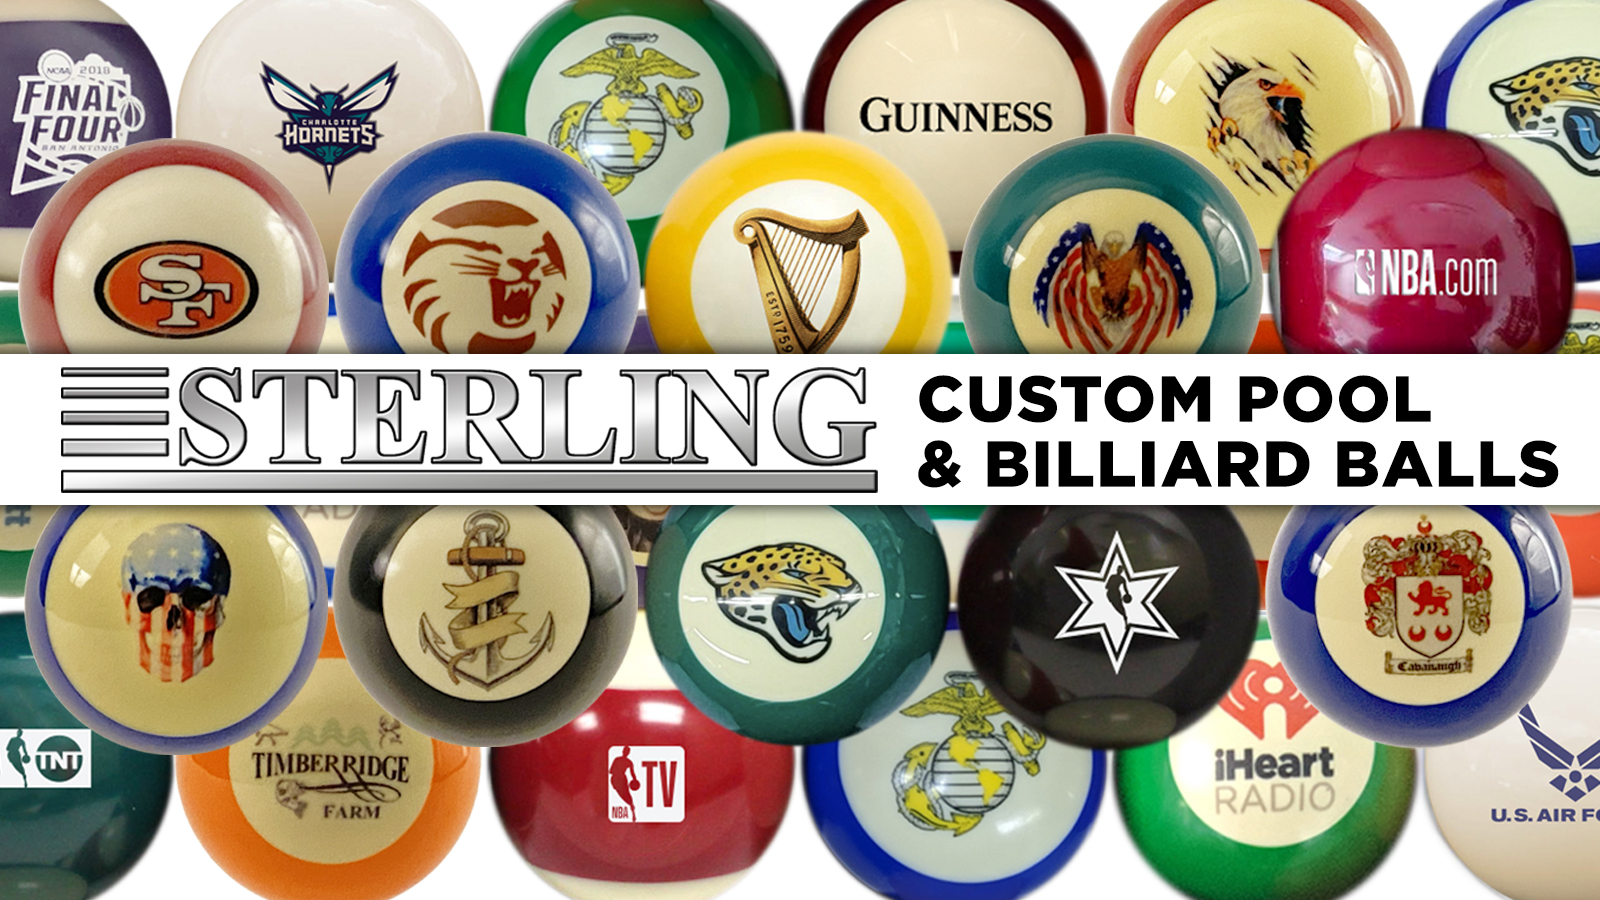 A collection of customized billiard balls created by Sterling Gaming.